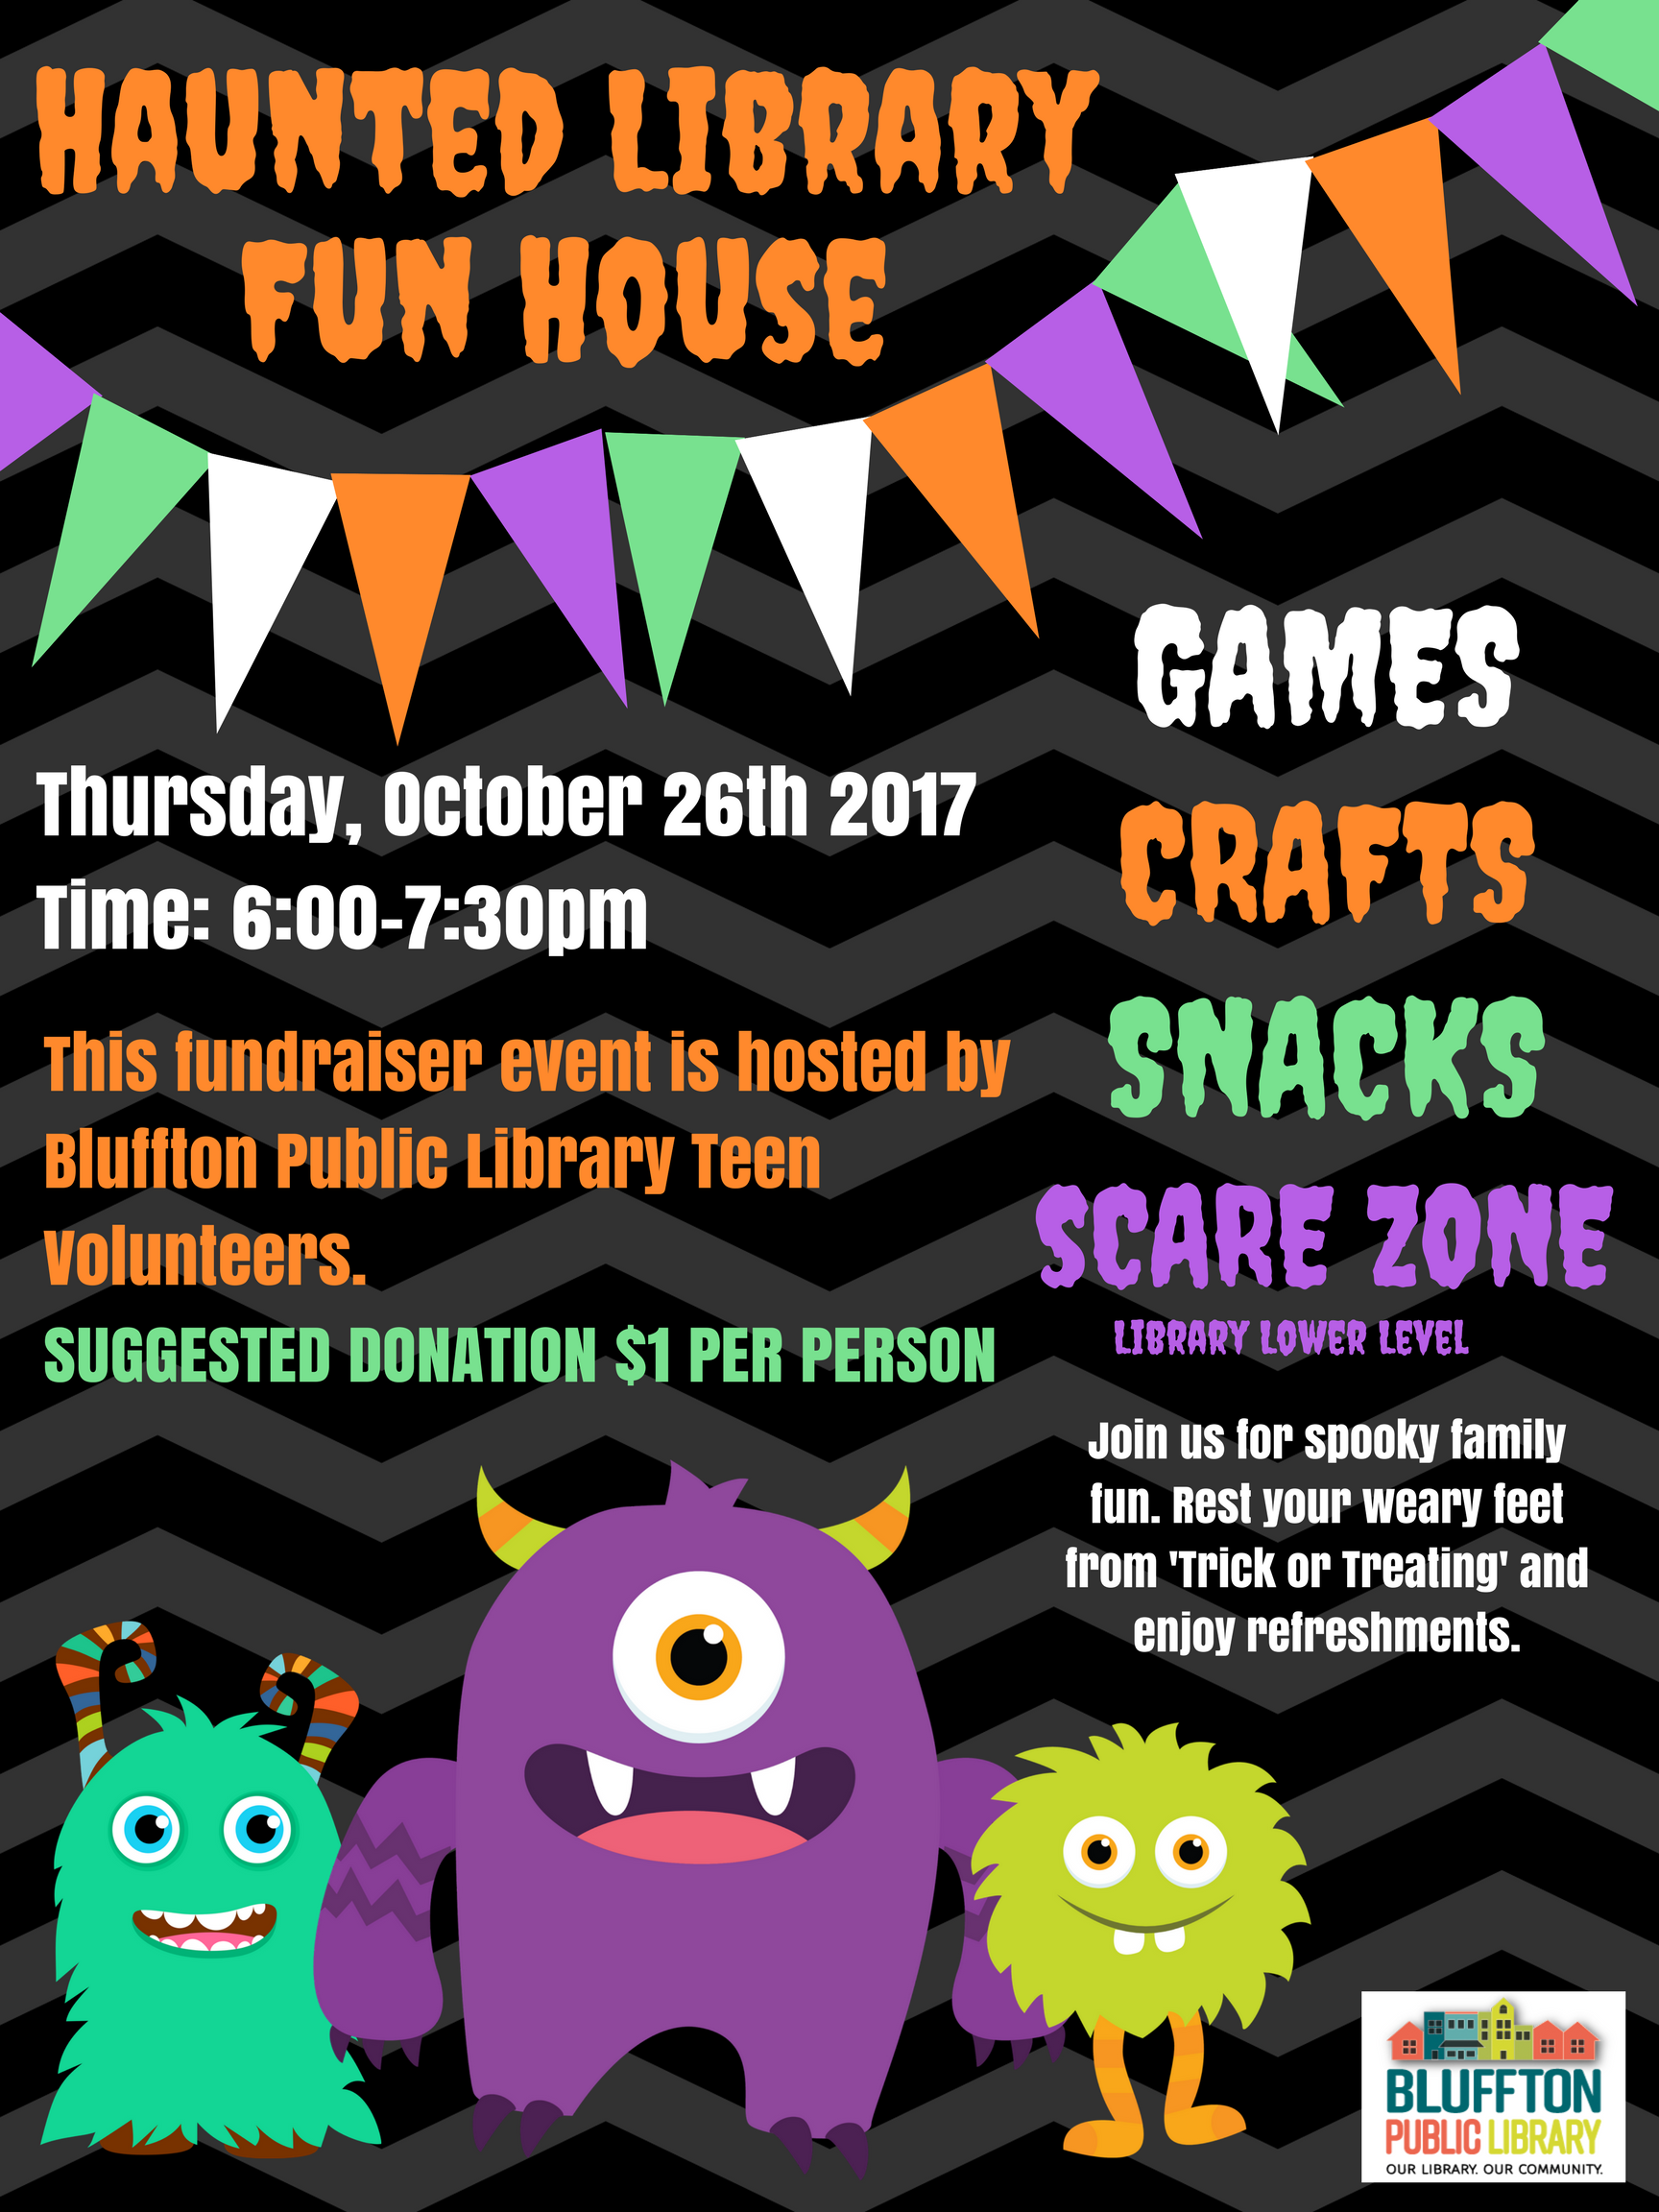 Spooky clipart haunted library. Fun house bluffton public